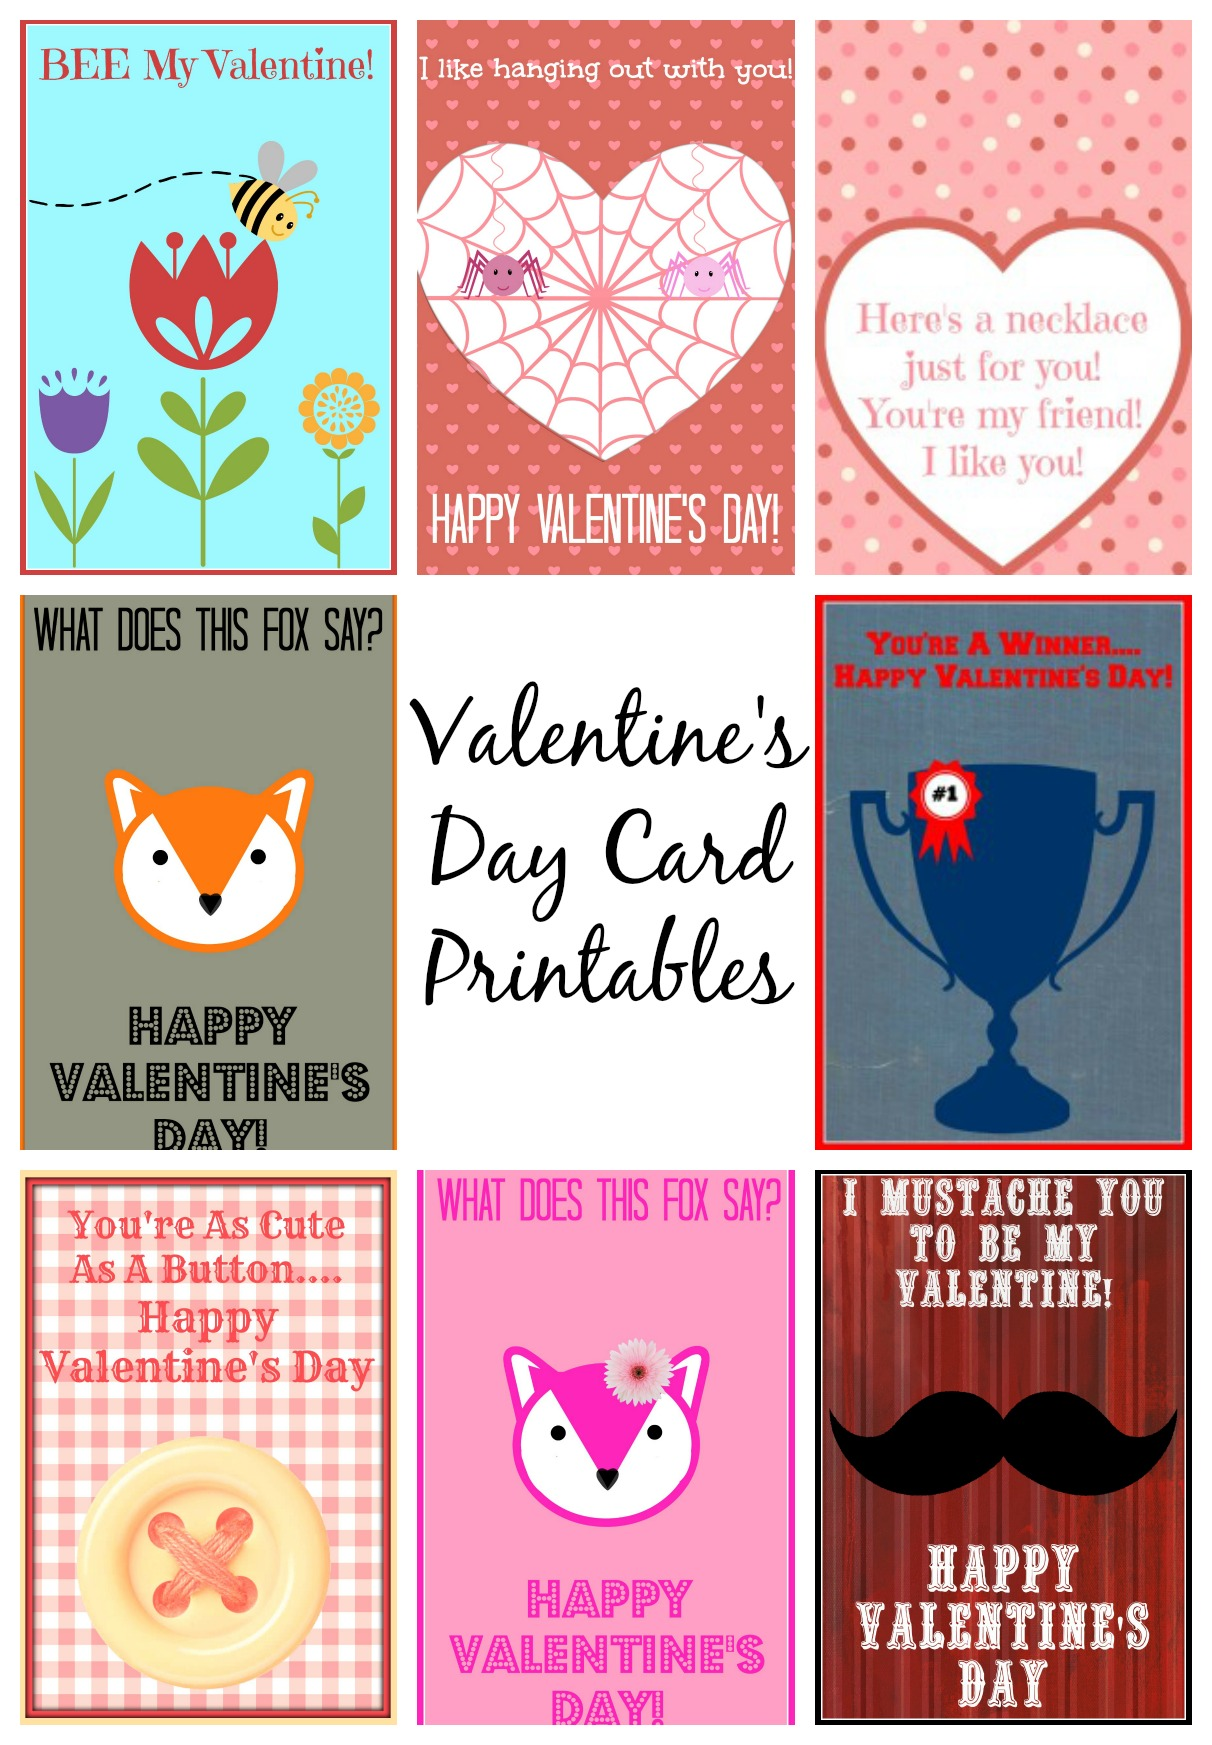 This is a picture of Impeccable Print Free Valentine Cards